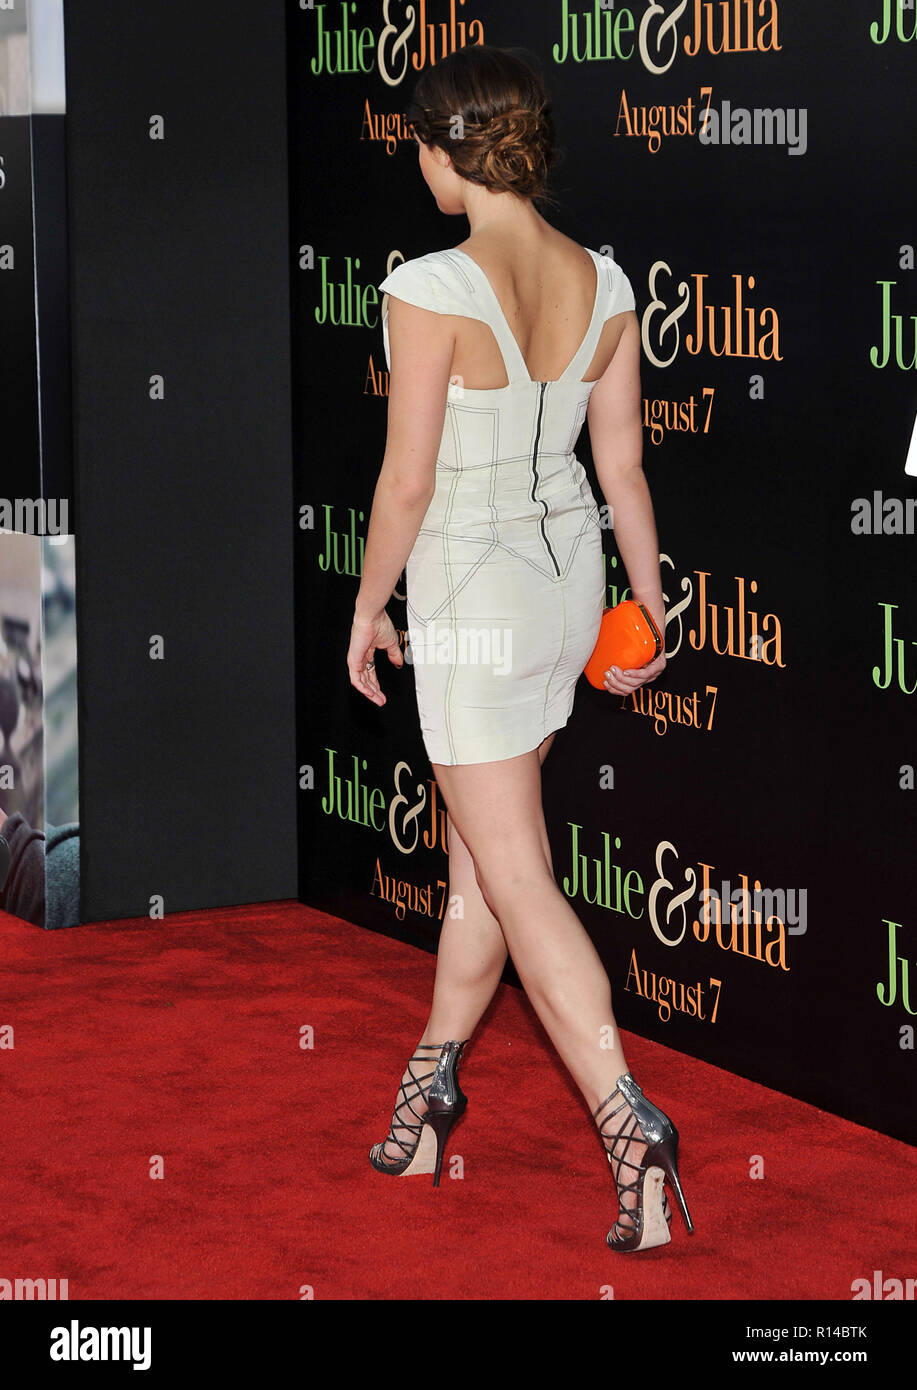 Page 2 Ashley Greene White Dress High Resolution Stock Photography And Images Alamy